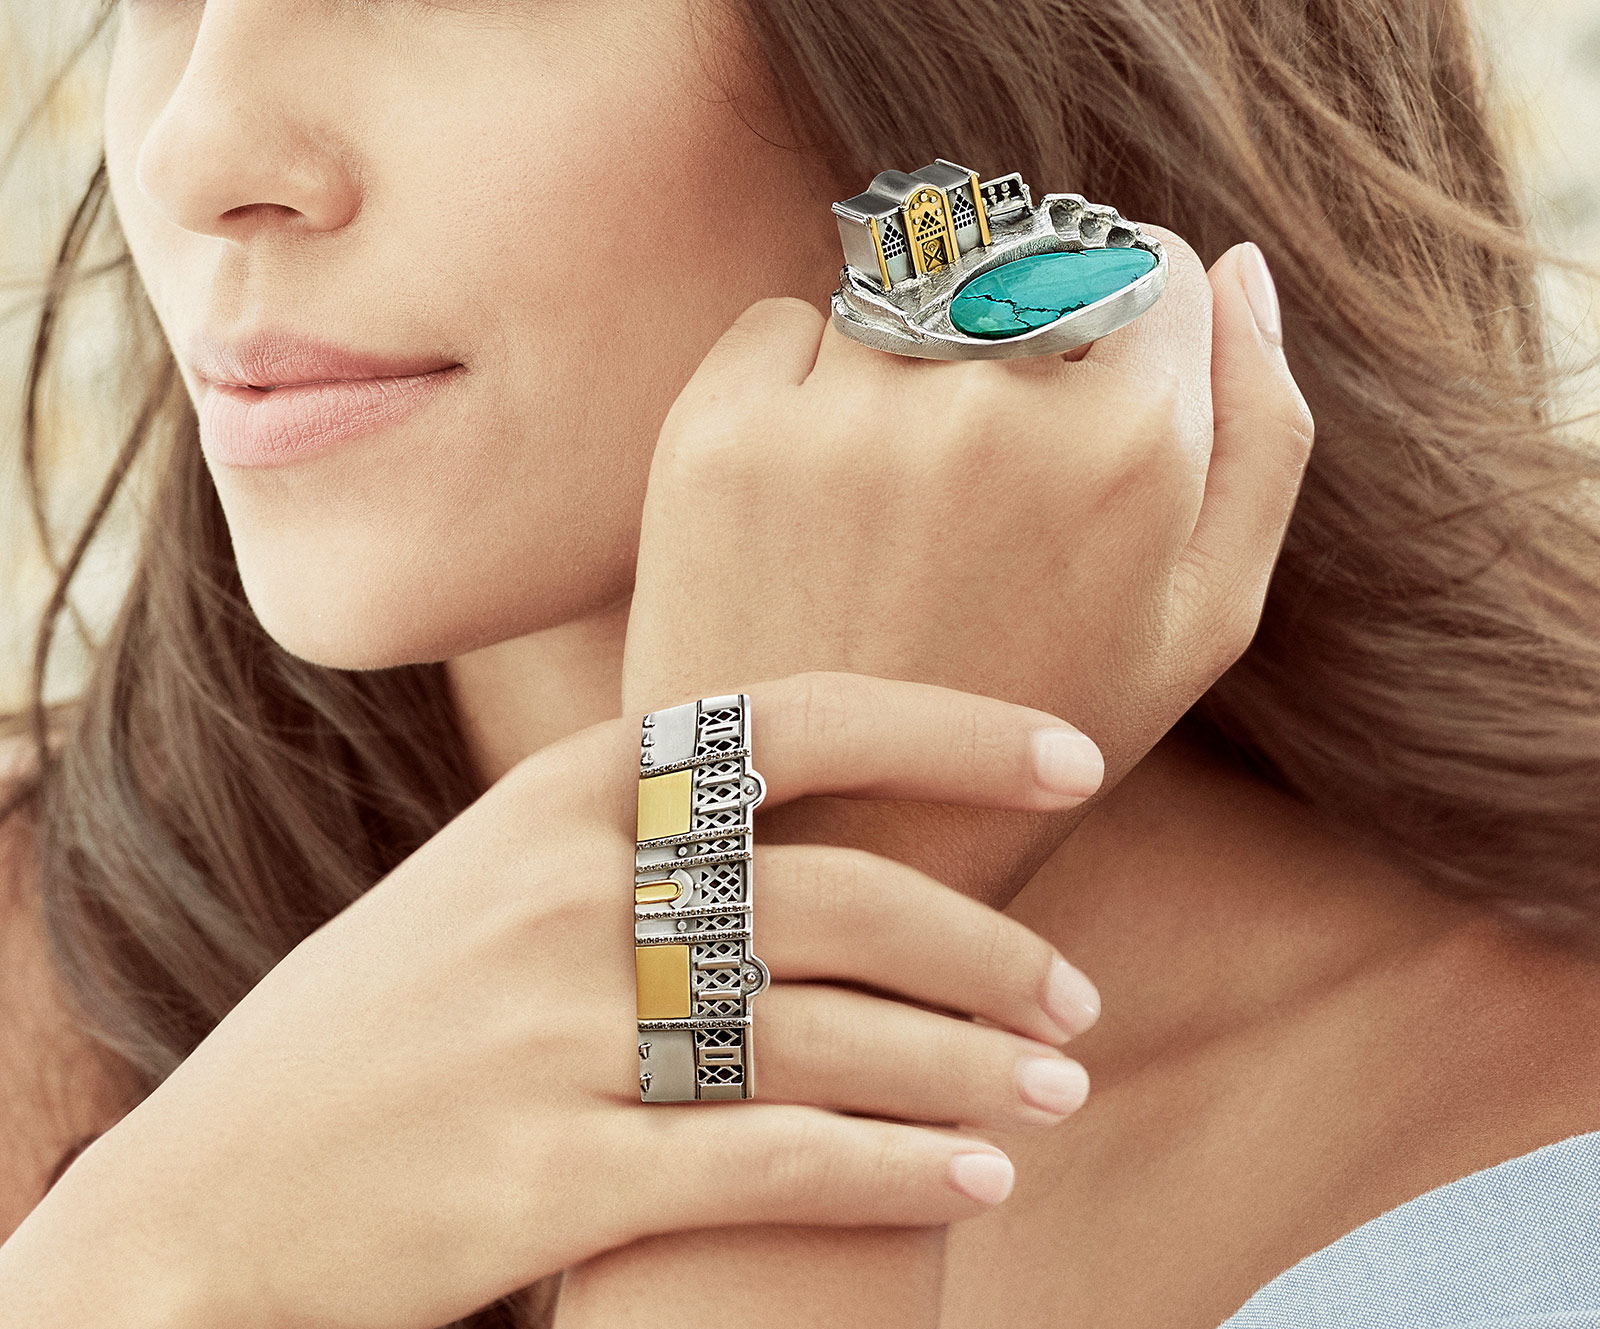 Azza Fahmy Nubia rings in yellow gold and silver